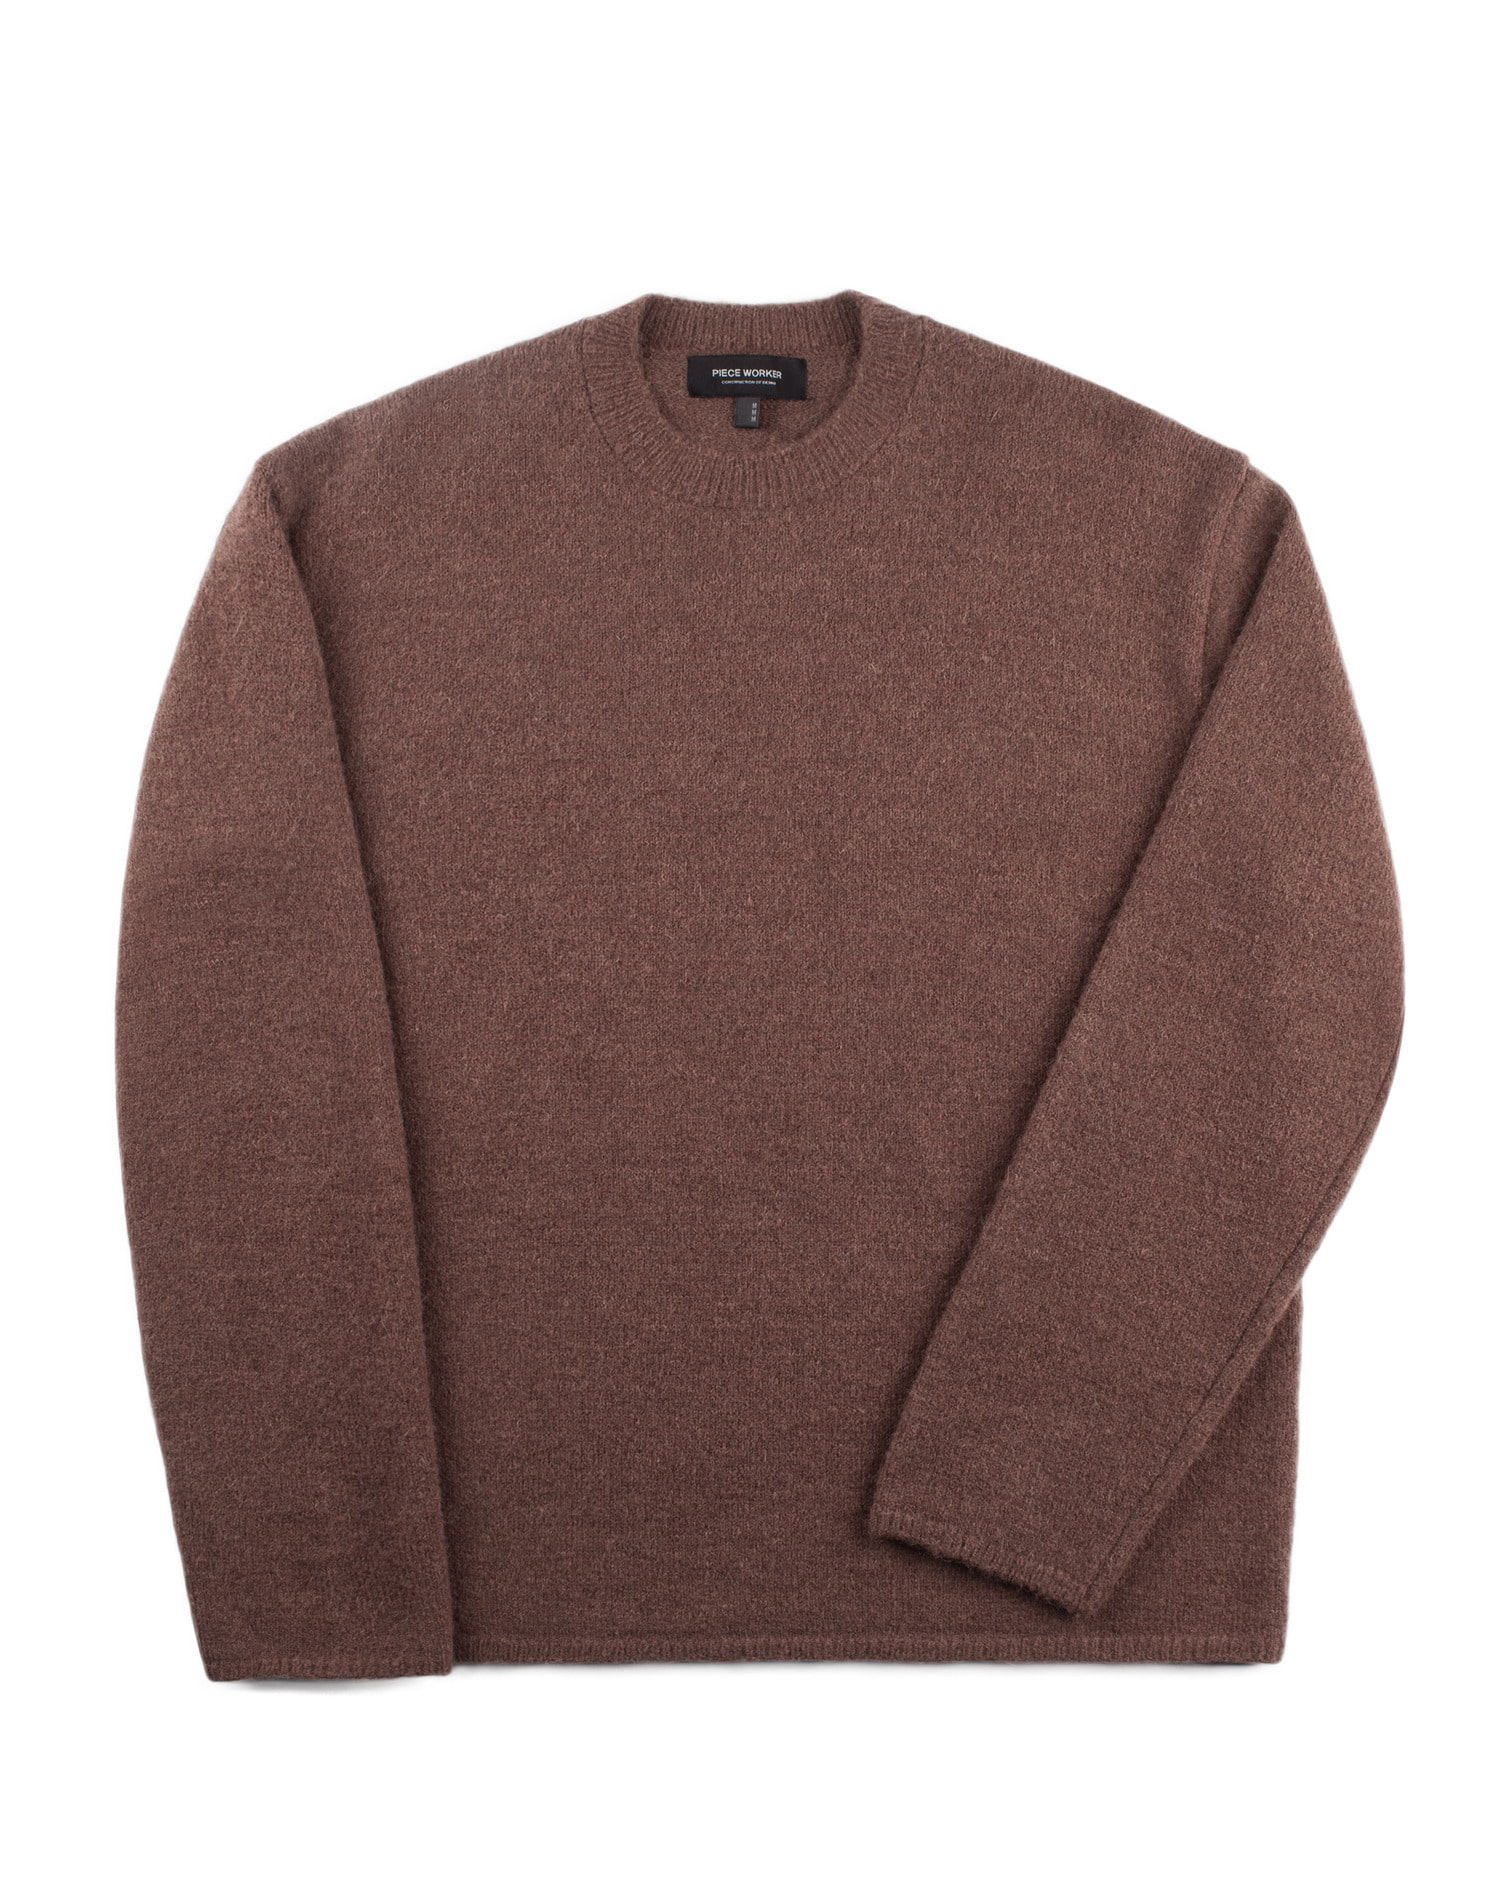 Oversize Alpaca Knit Brown / Over Fit